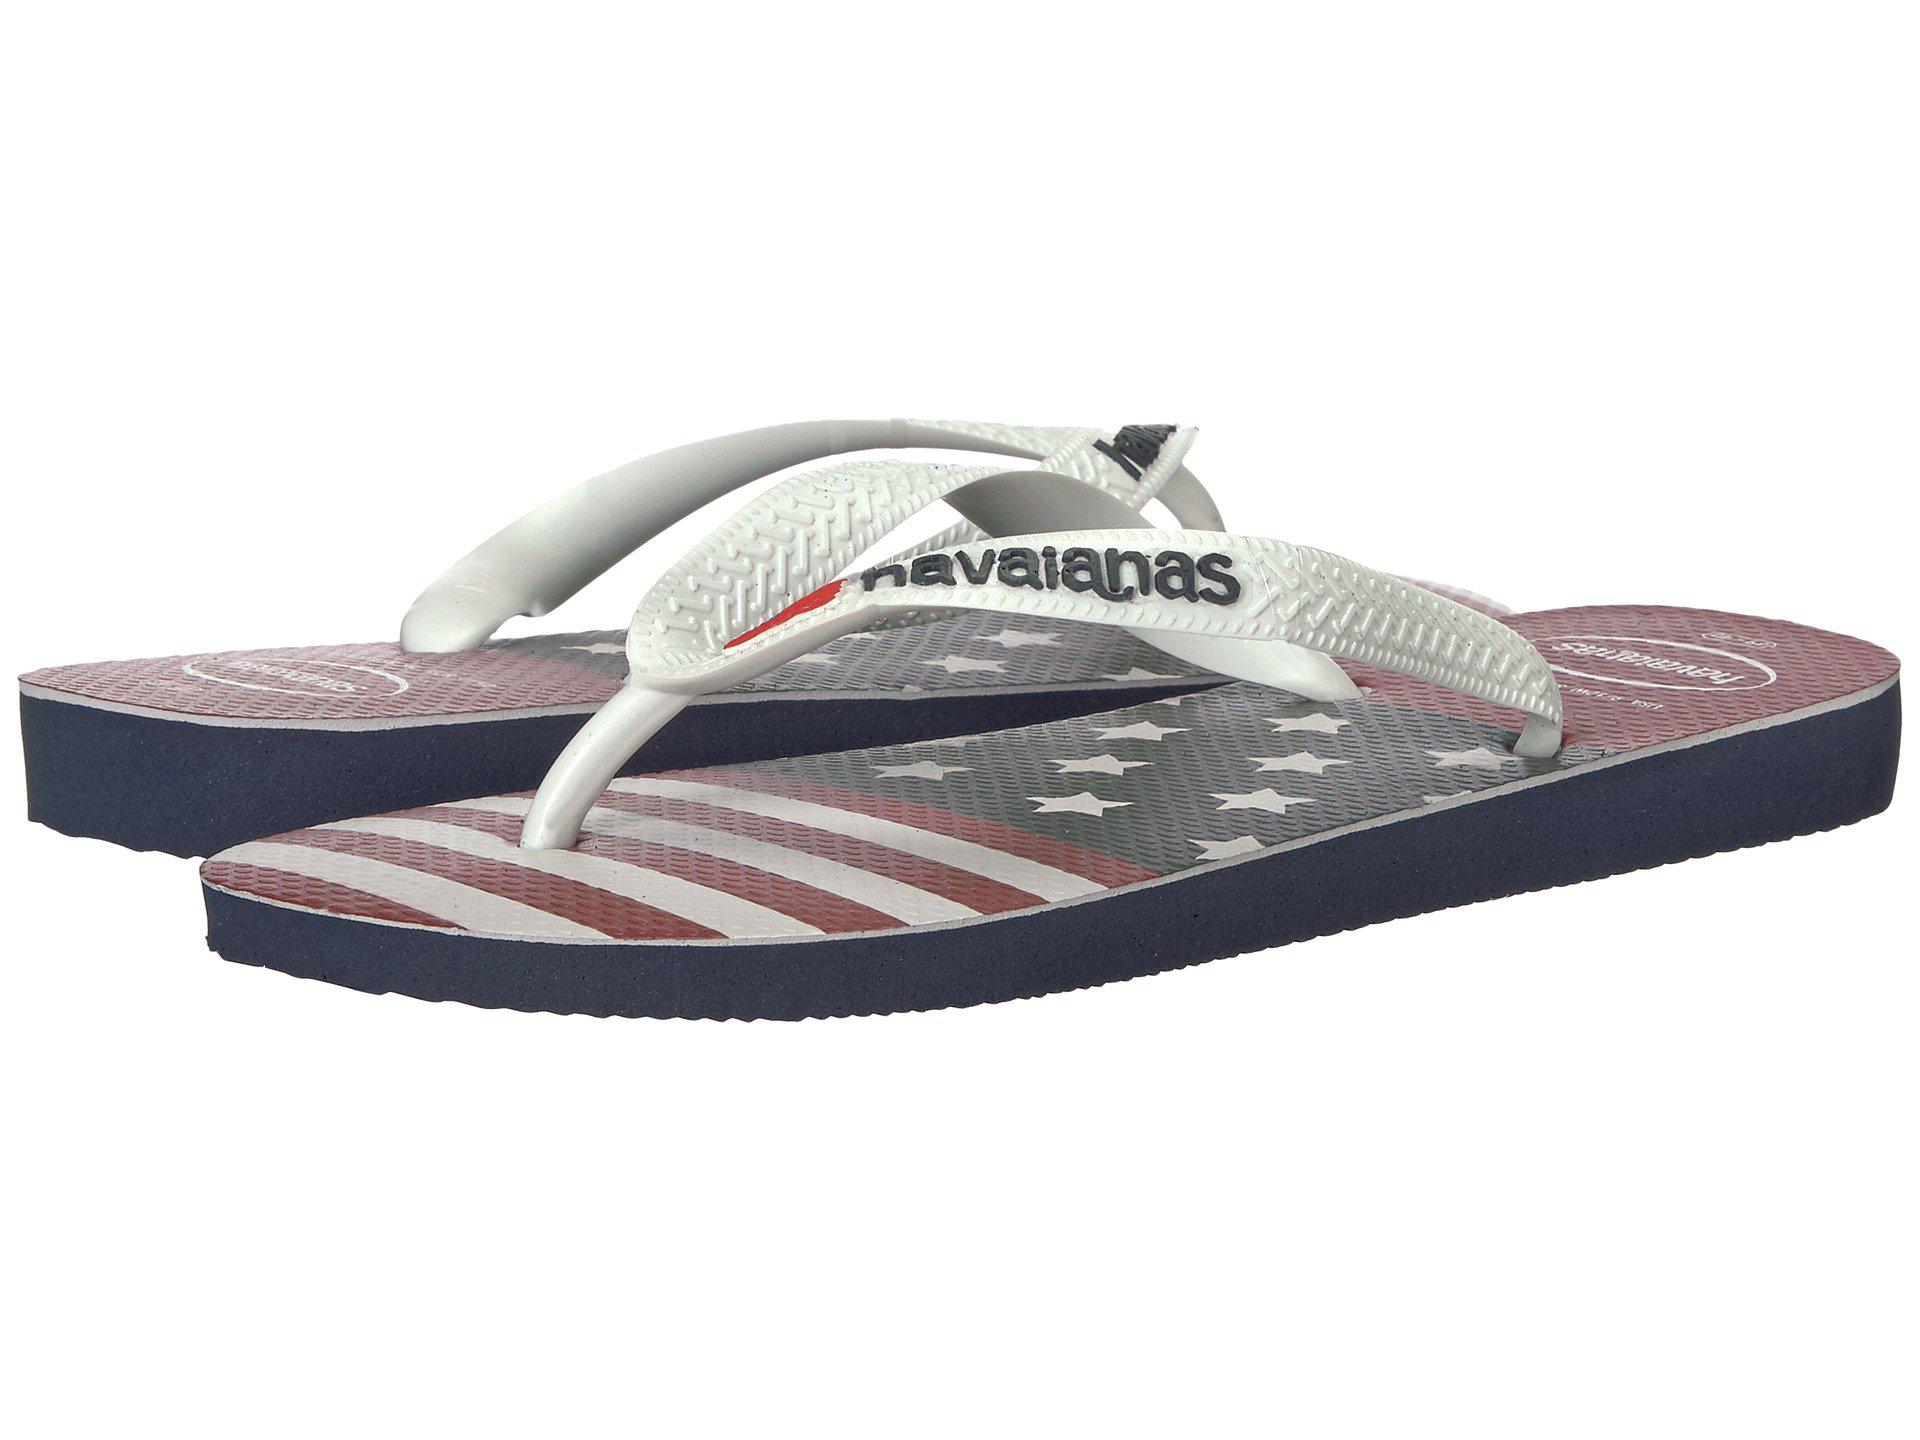 b65b105f49bcbf Lyst - Havaianas Top Usa Stars And Stripes Flip-flops in Blue for ...